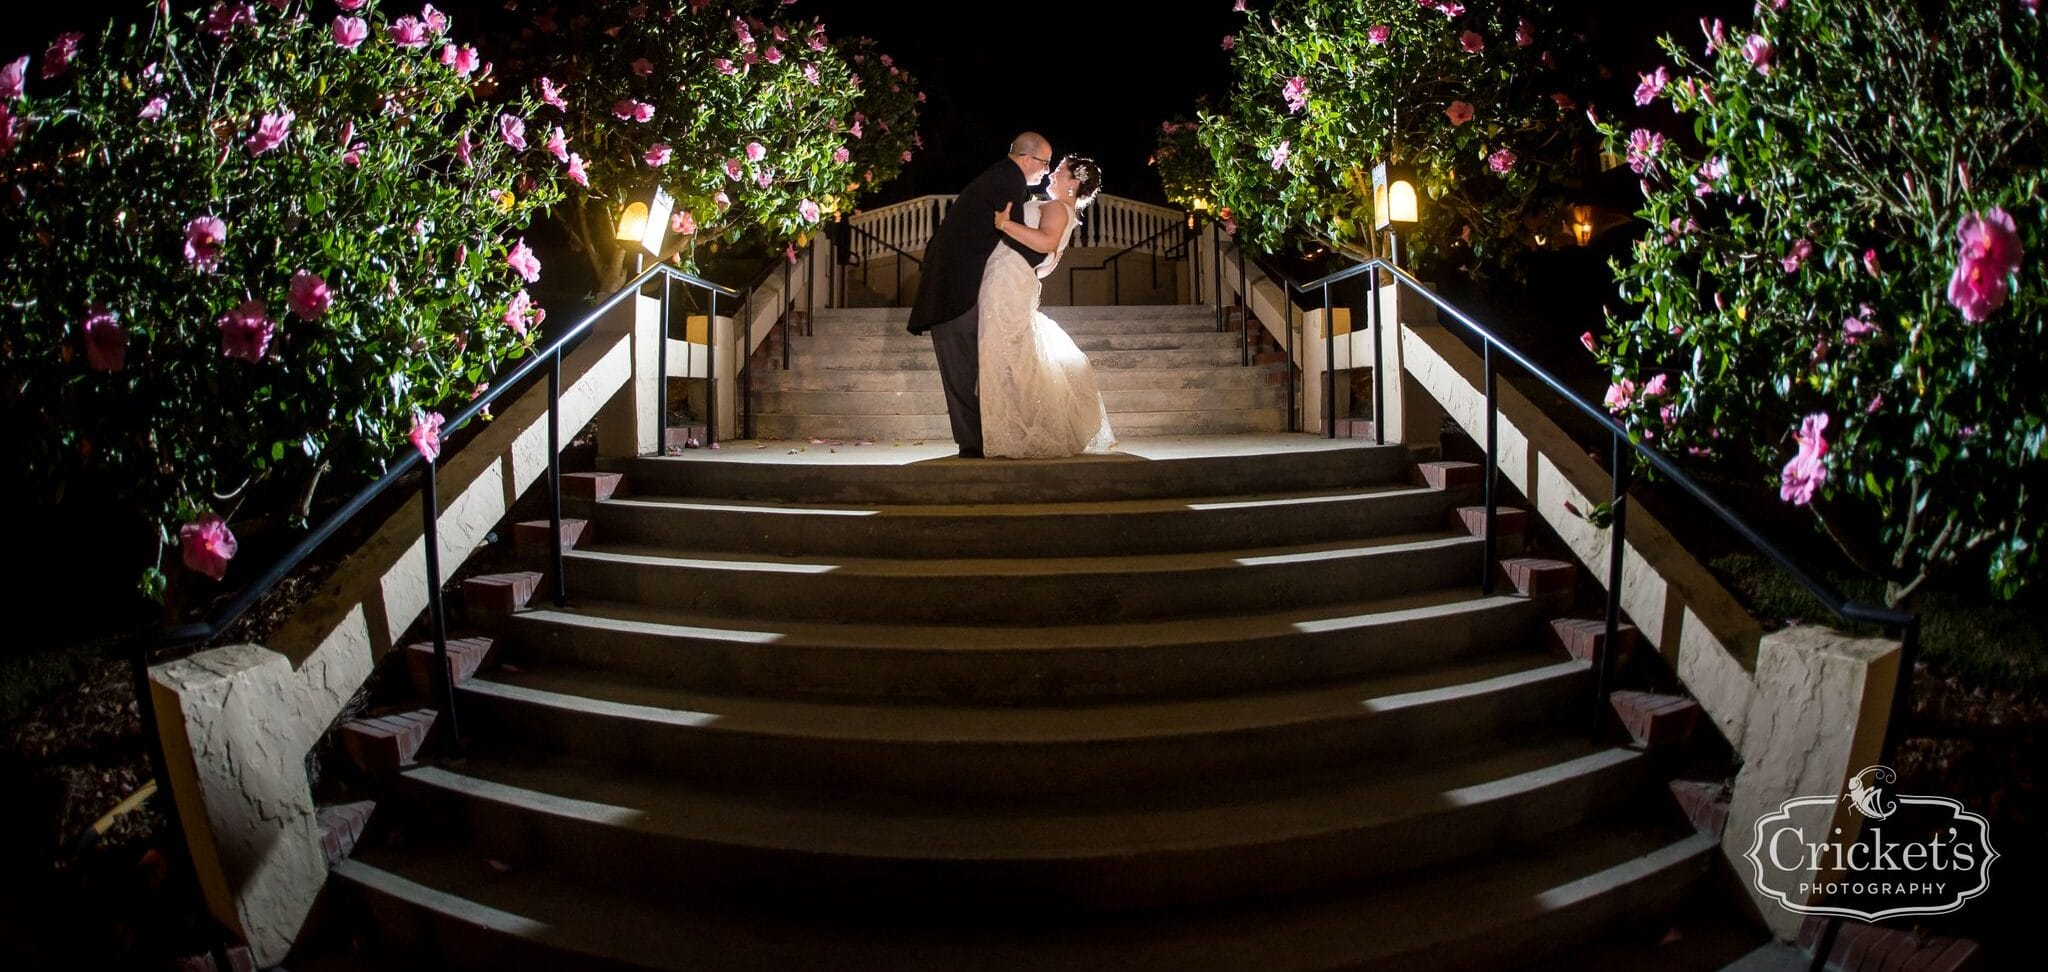 Bride and groom on outdoor staircase at night with dramatic lighting Questions to Ask Your Wedding Venue